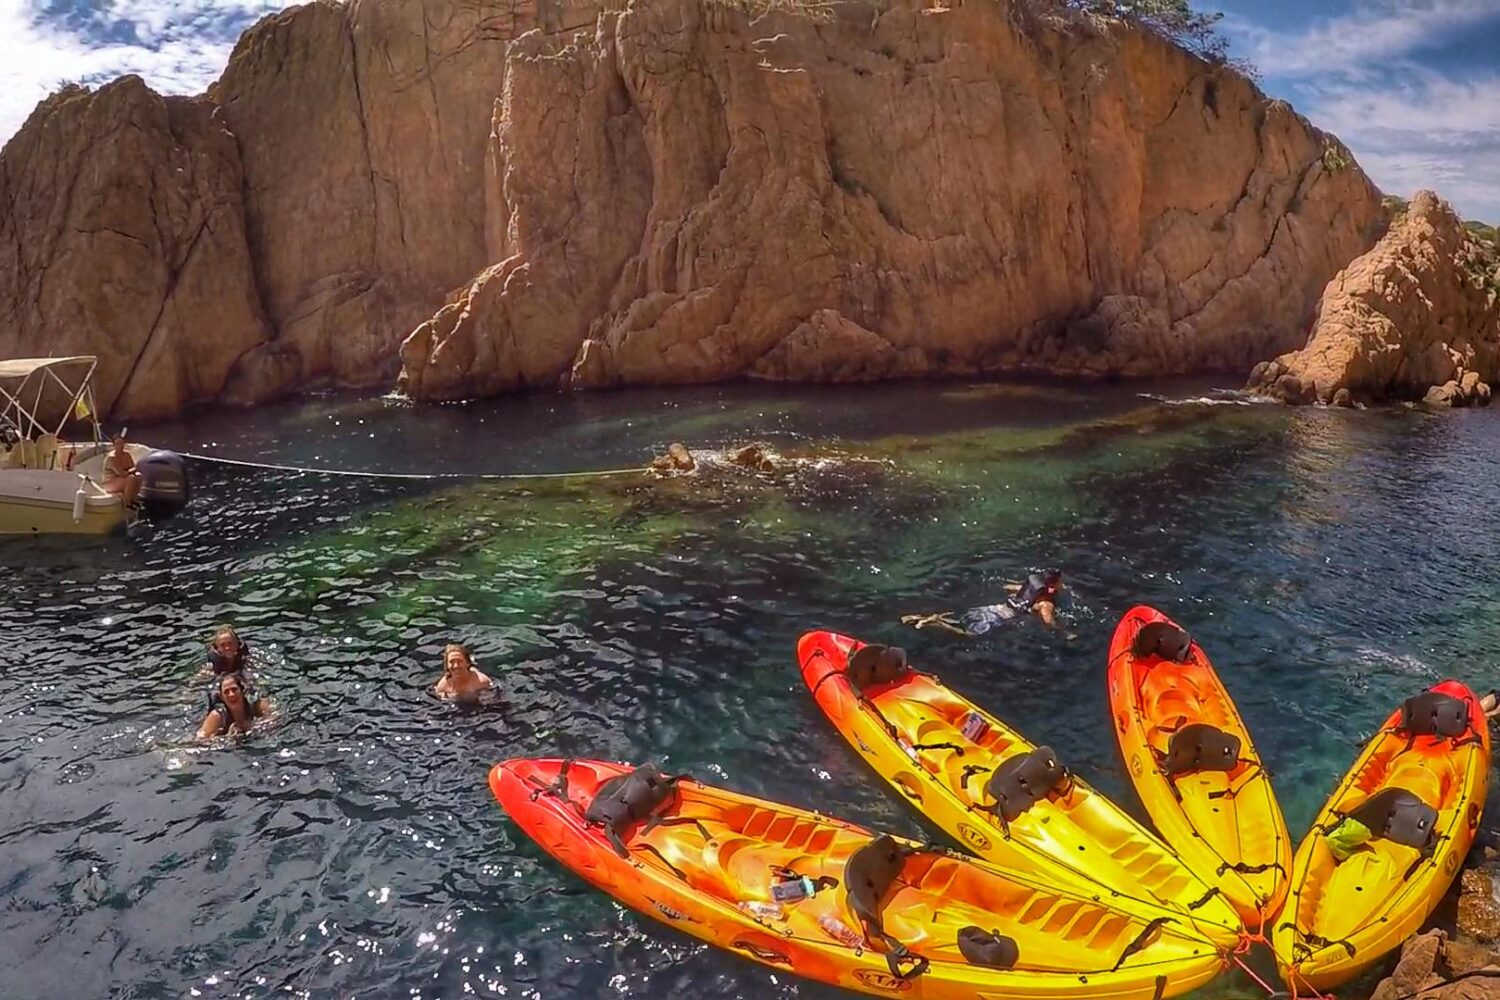 Snorkelling in the Costa Brava